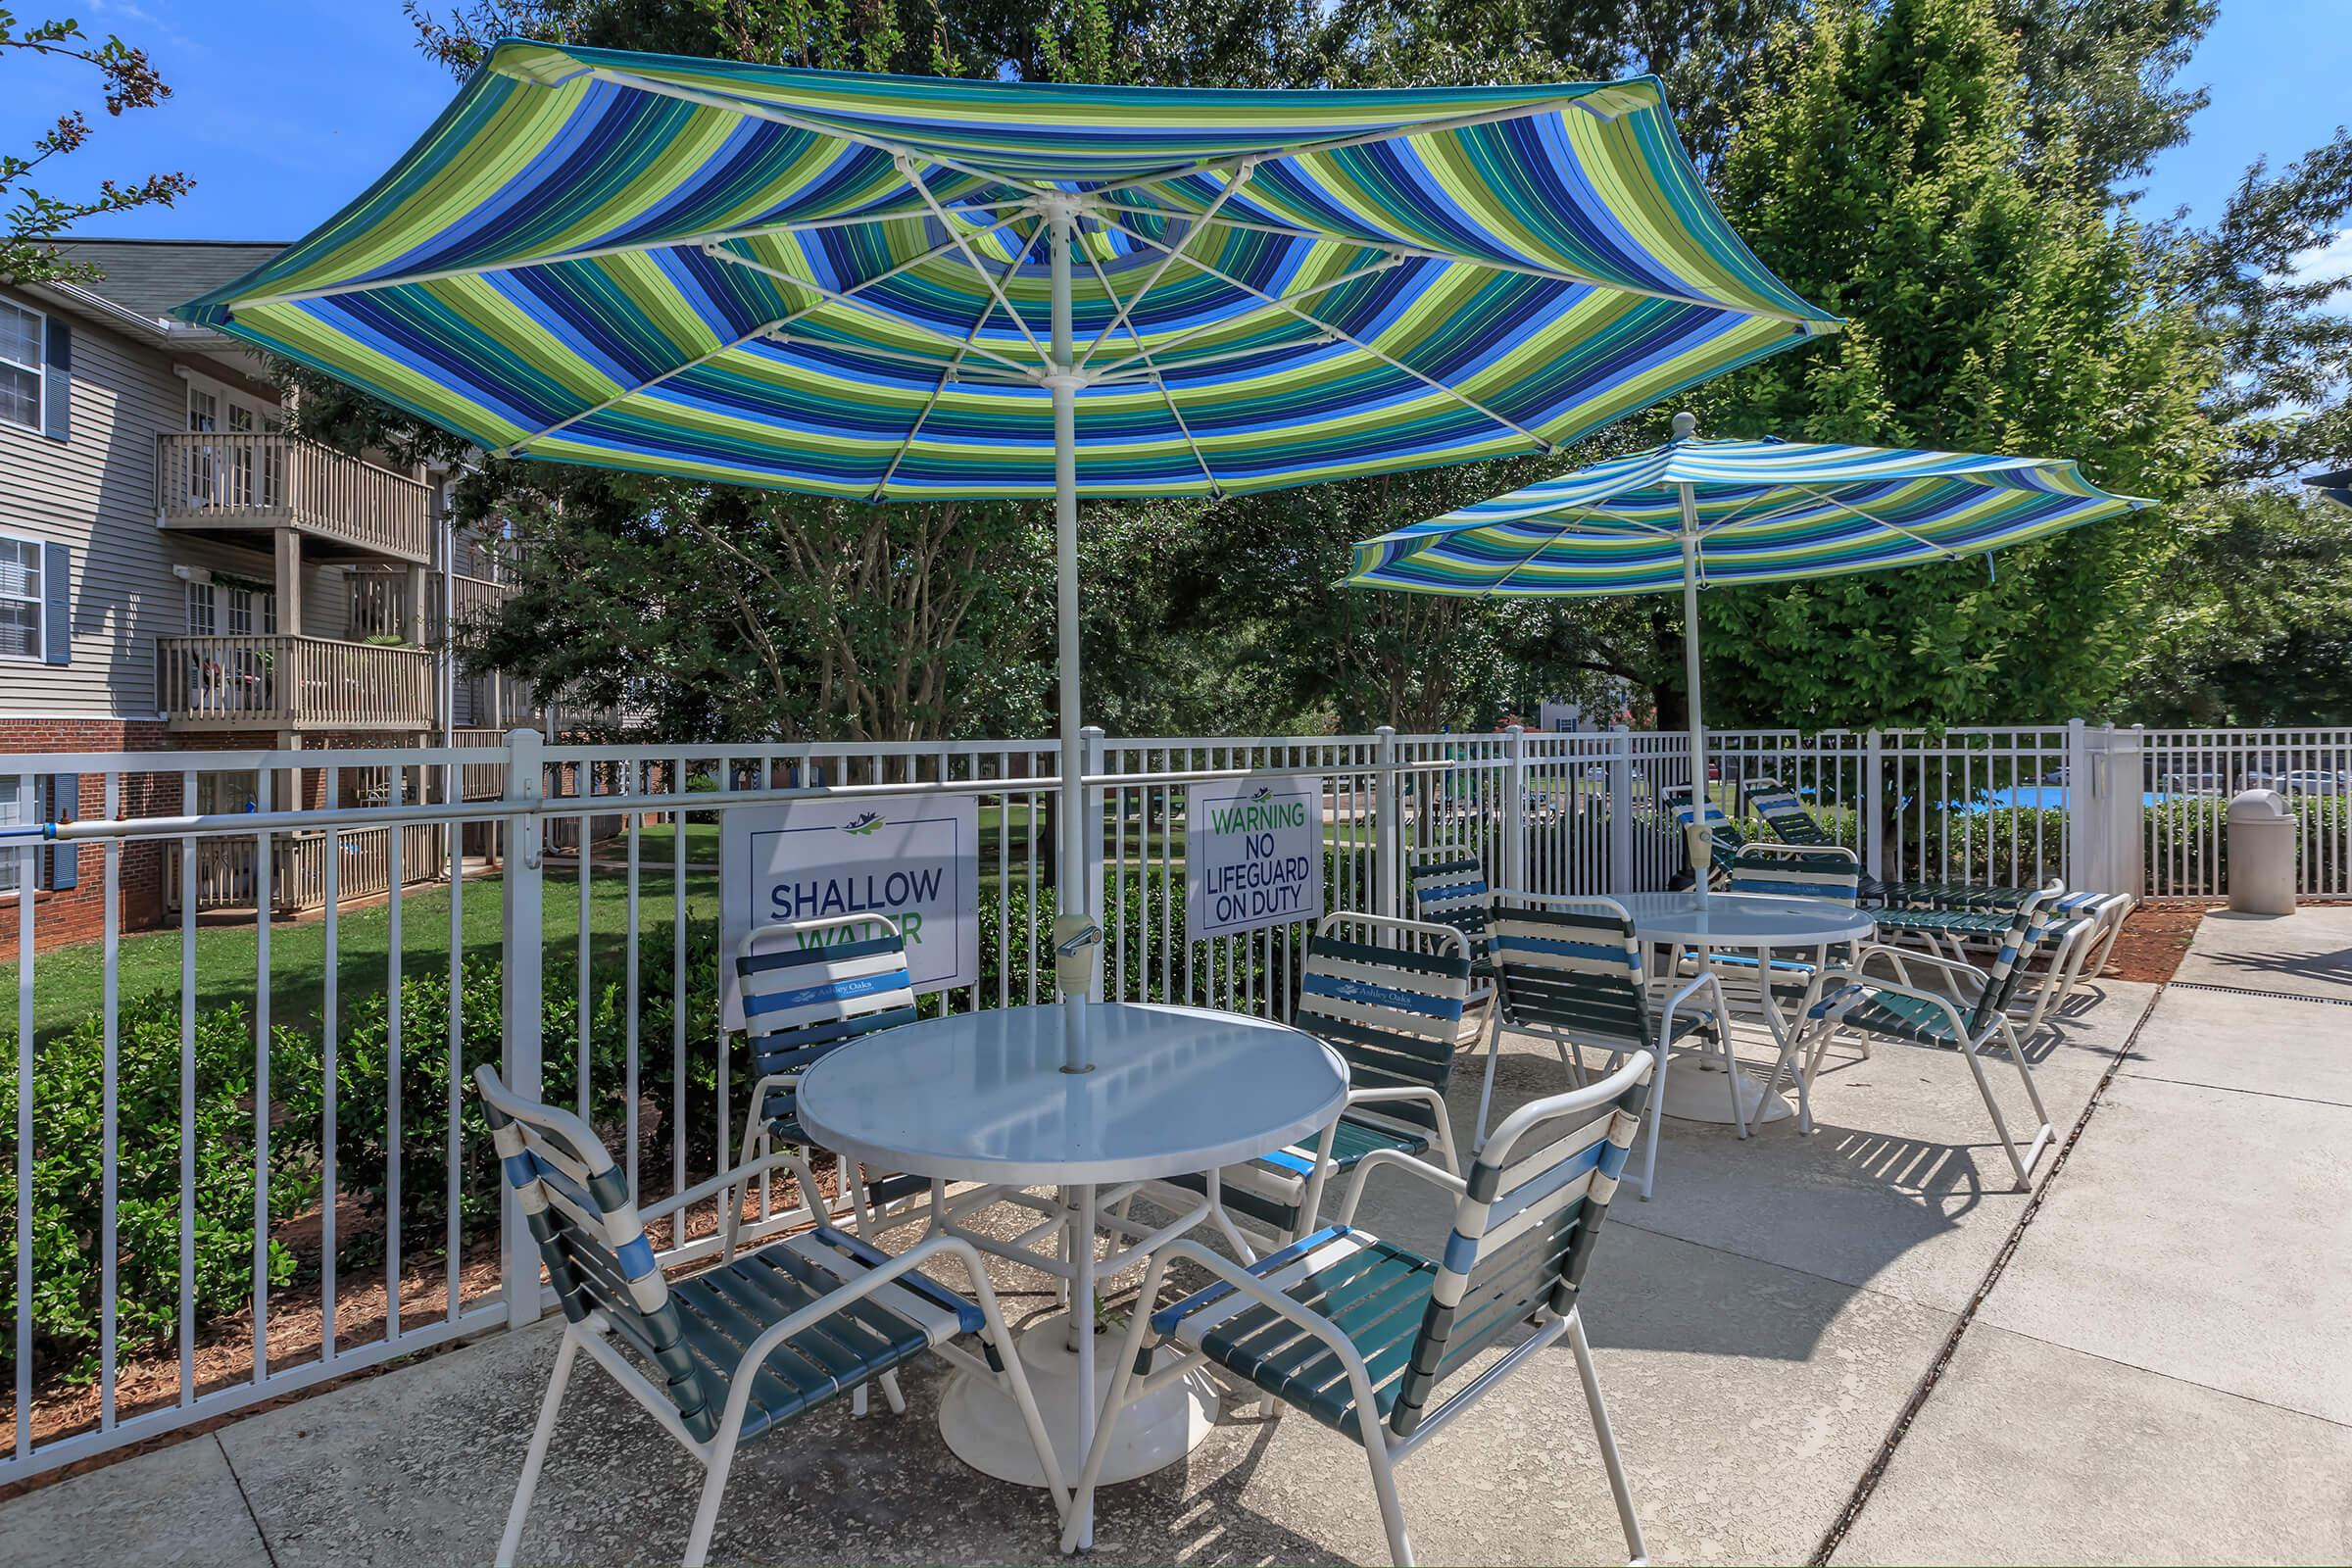 a group of lawn chairs sitting on top of a blue umbrella